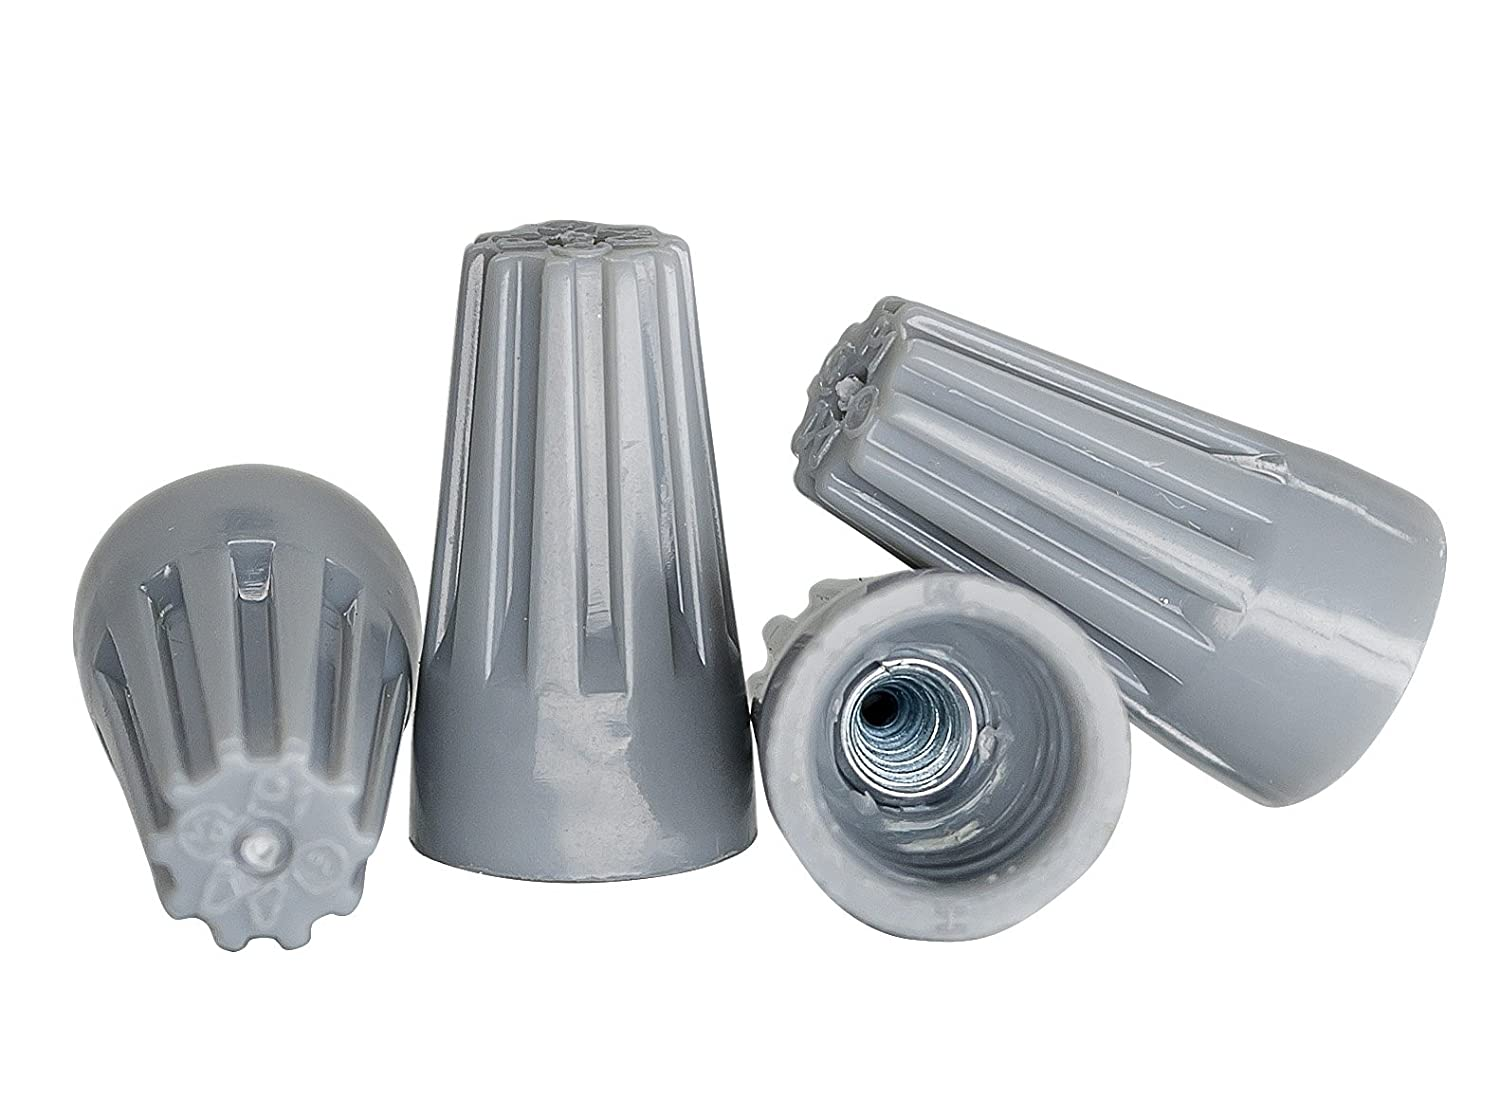 Grey Wire Connectors Bulk Bag of 1 000 UL Listed Twist On P1 Type Easy Screw On Cap